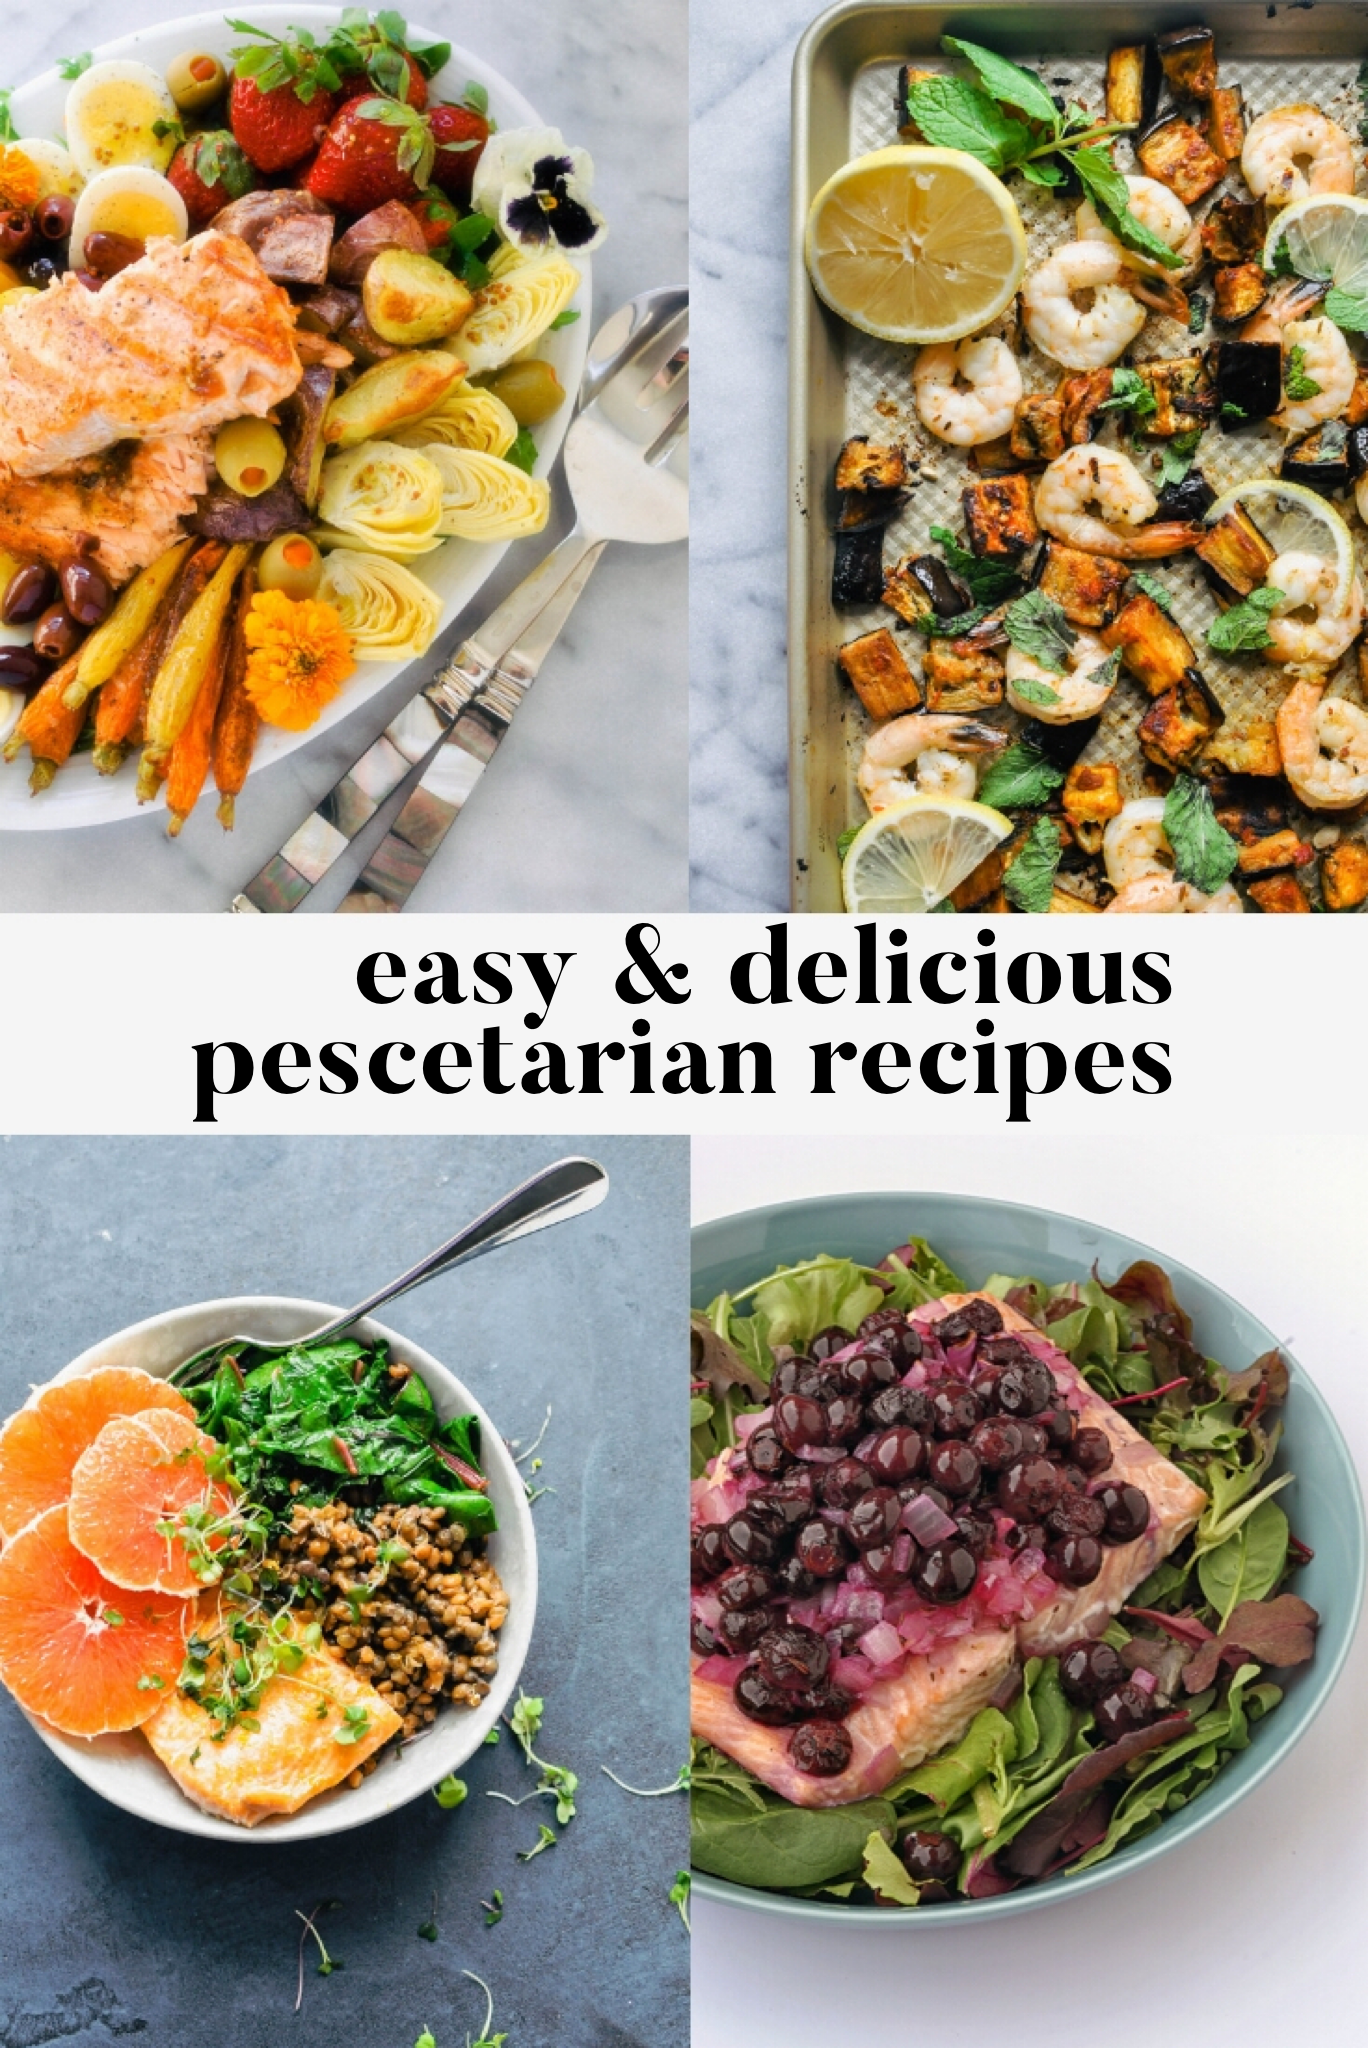 Easy & Delicious Pescetarian Recipes! If you're looking for a few new fish or seafood recipes, then this list of recipes from some of my favorite food bloggers is perfect for you! There are, of course, a bunch of salmon recipes, but I'm also featuring tuna, shrimp, sea bass, tilapia, and halibut recipes.